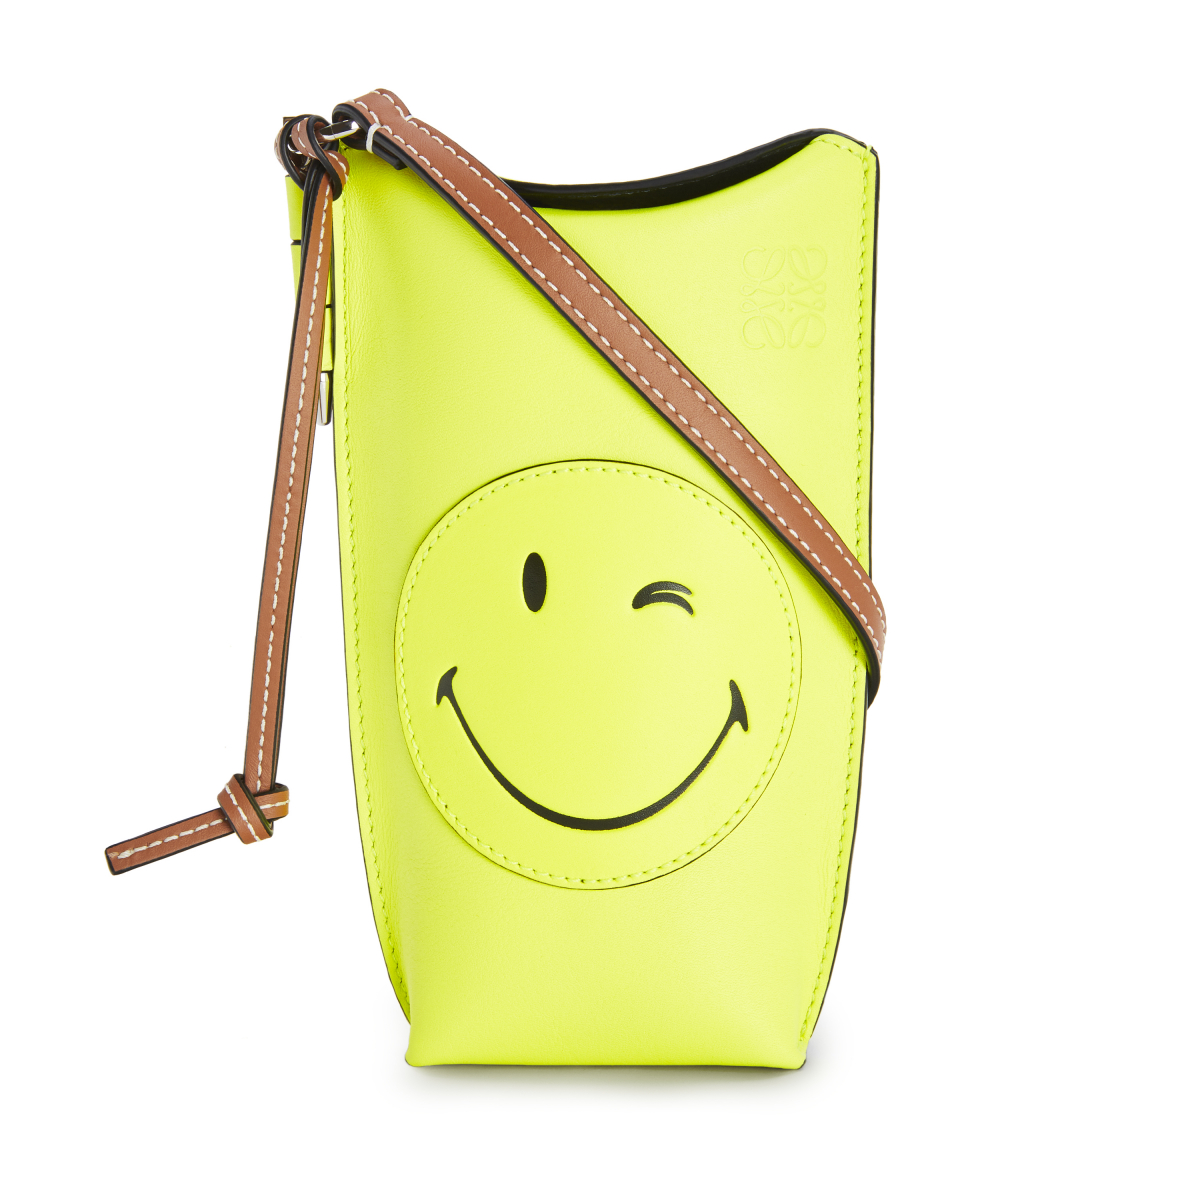 PAULA GATE POCKET SMILEY WINK(H19×W8×D4cm)¥98,000 ※日本限定/ロエベ ジャパン クライアントサービス LOEWE Paula's 2020 featuring SmileyWorld®